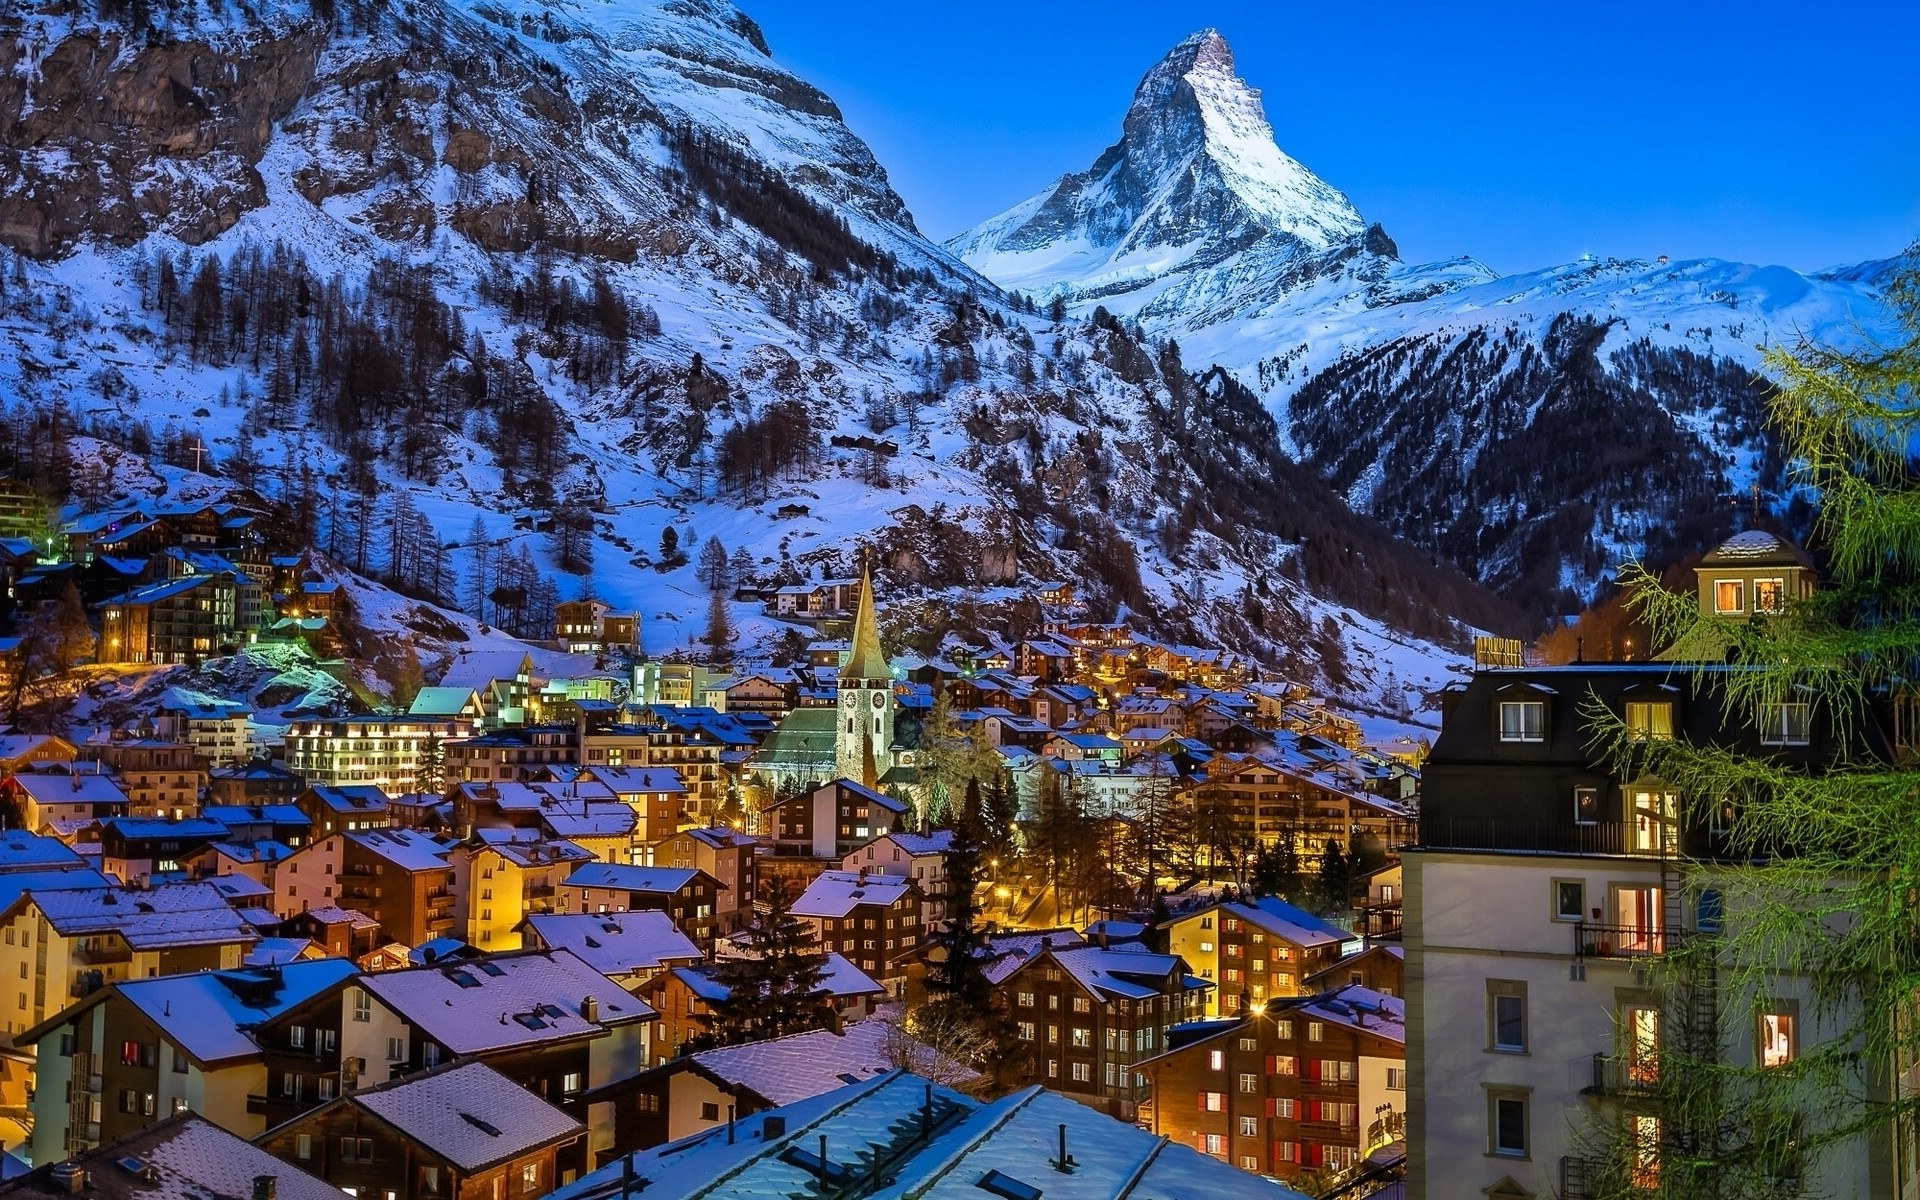 nature Landscape Evening Lights House Town Church Switzerland Matterhorn Snow Winter